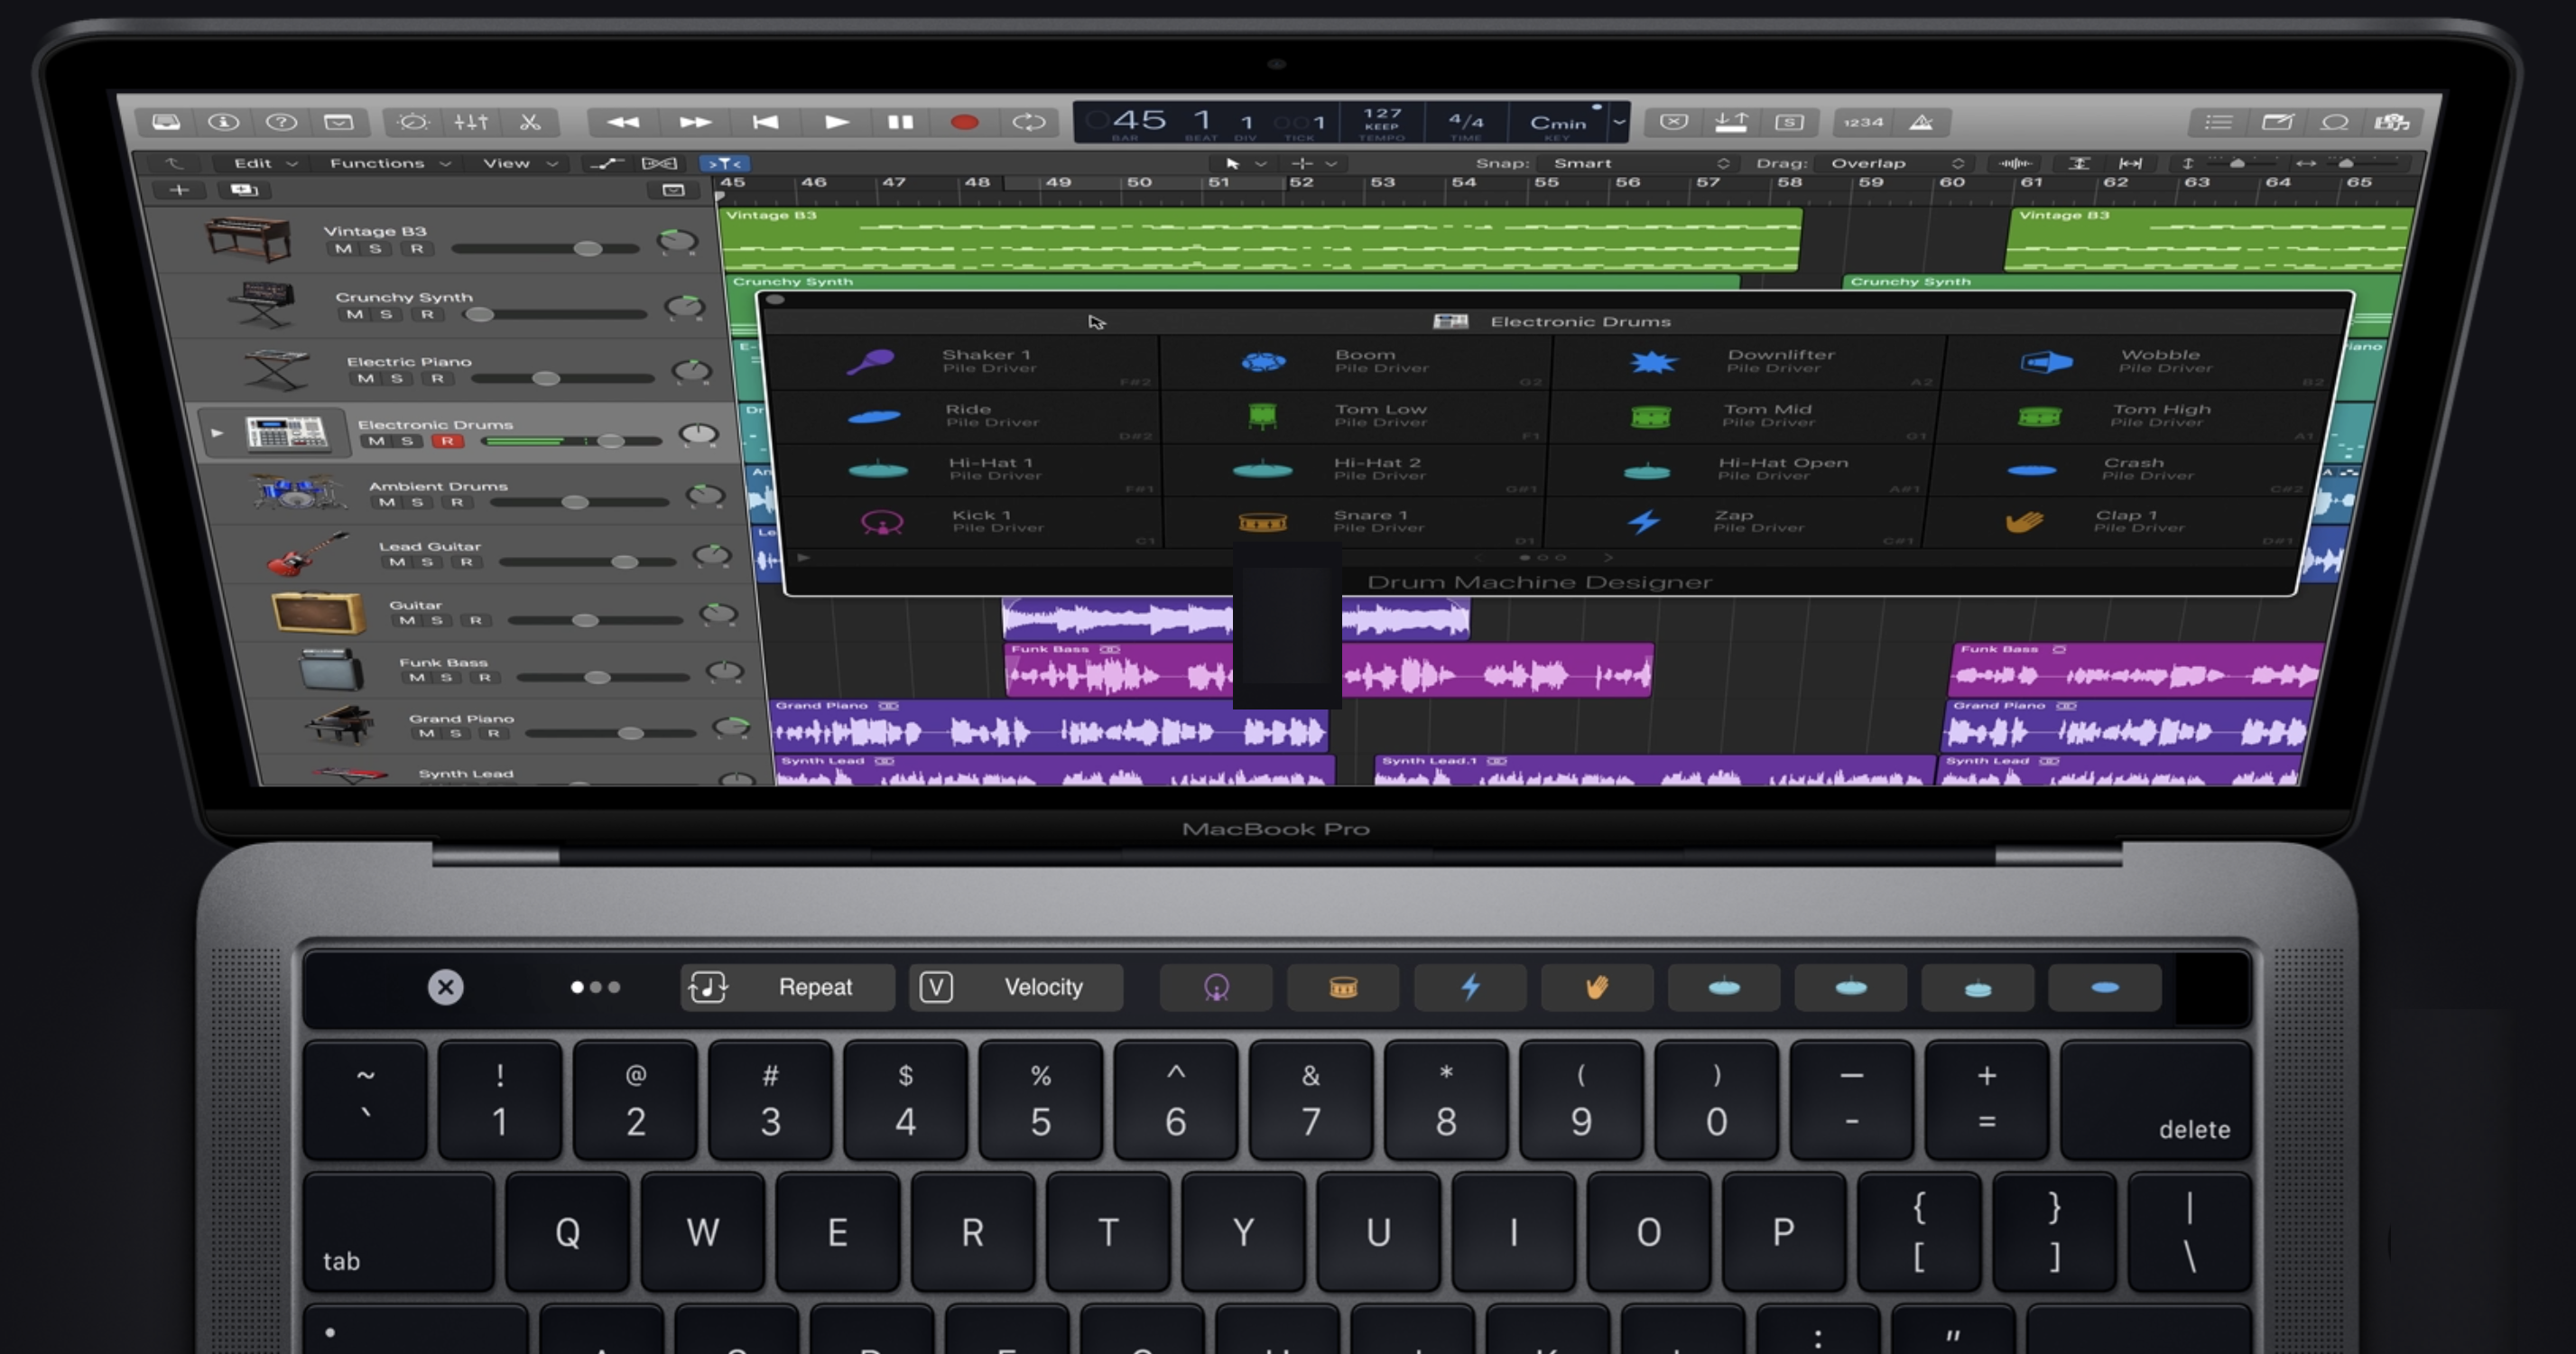 2018 Apple MacBook Pro Vs 2017 MacBook Pro With Touch Bar